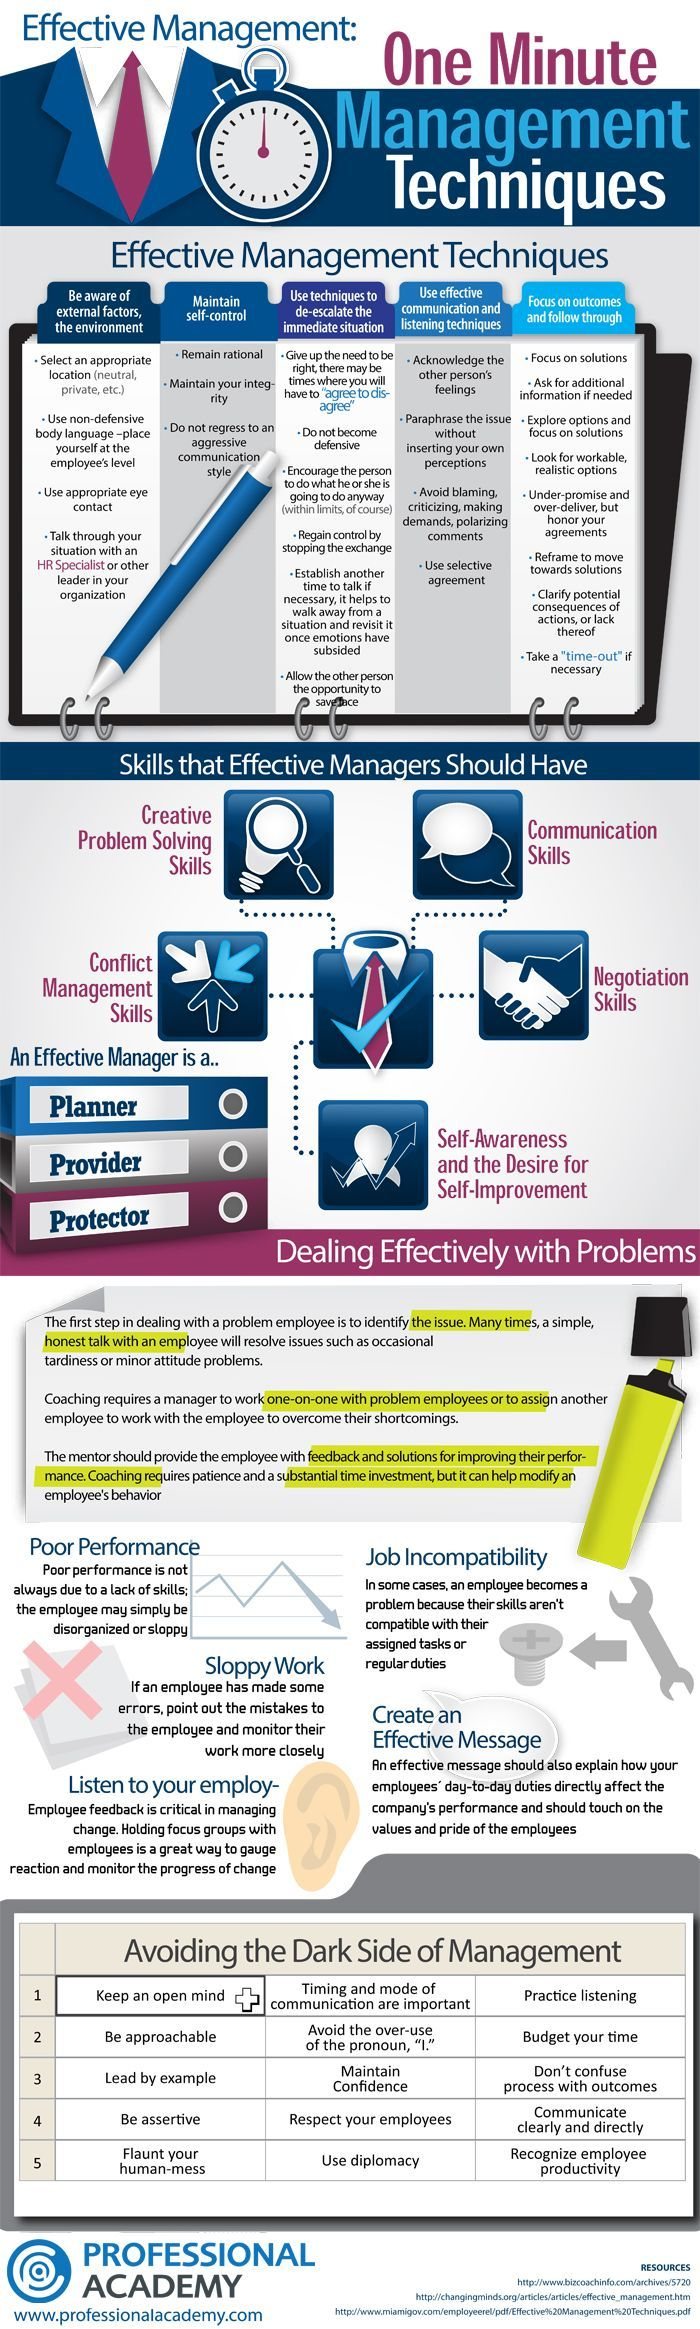 One Minute Management Techniques INFOGRAPHIC - January's Original Infographic Blog from Professional Academy. www.professionalacademy.com